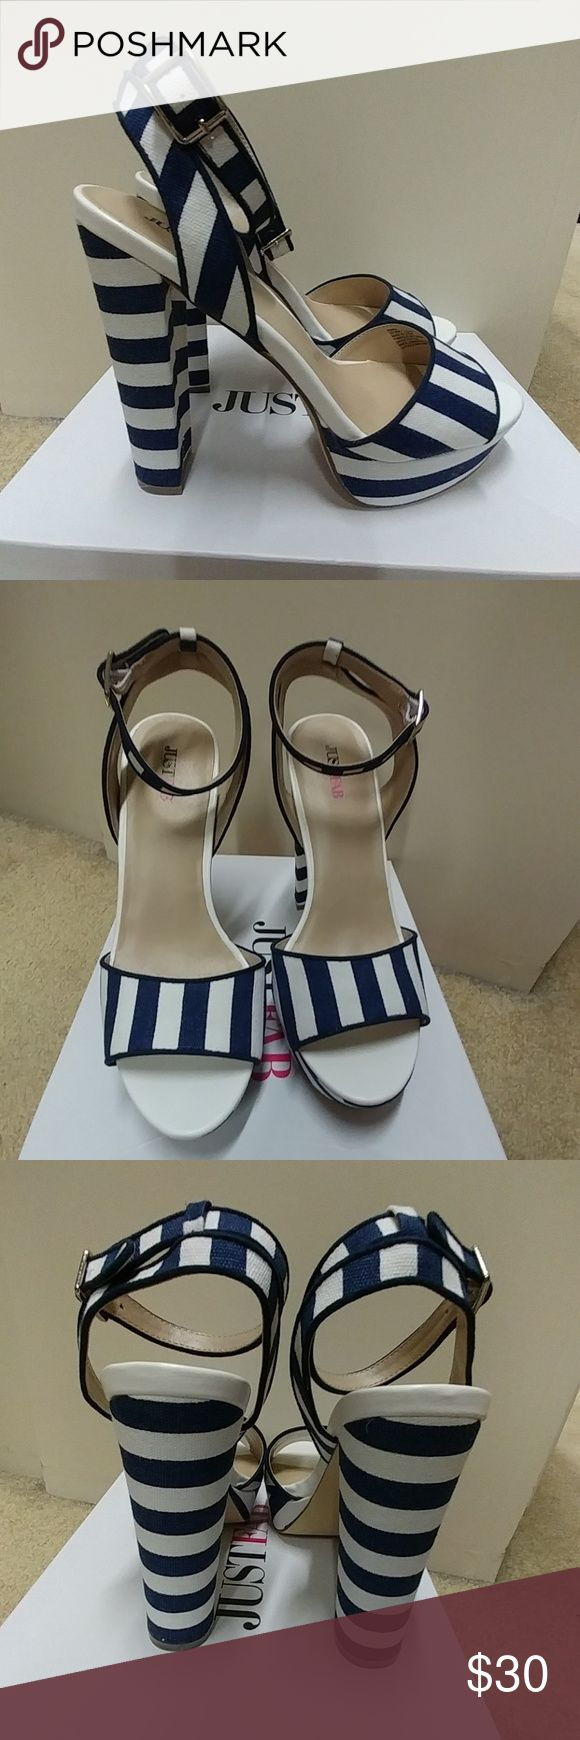 """Blue and White Striped Heel Sandal Blue and White Striped Heel from JustFab.  5.5"""" platform heel.  New in box. JustFab Shoes Sandals"""